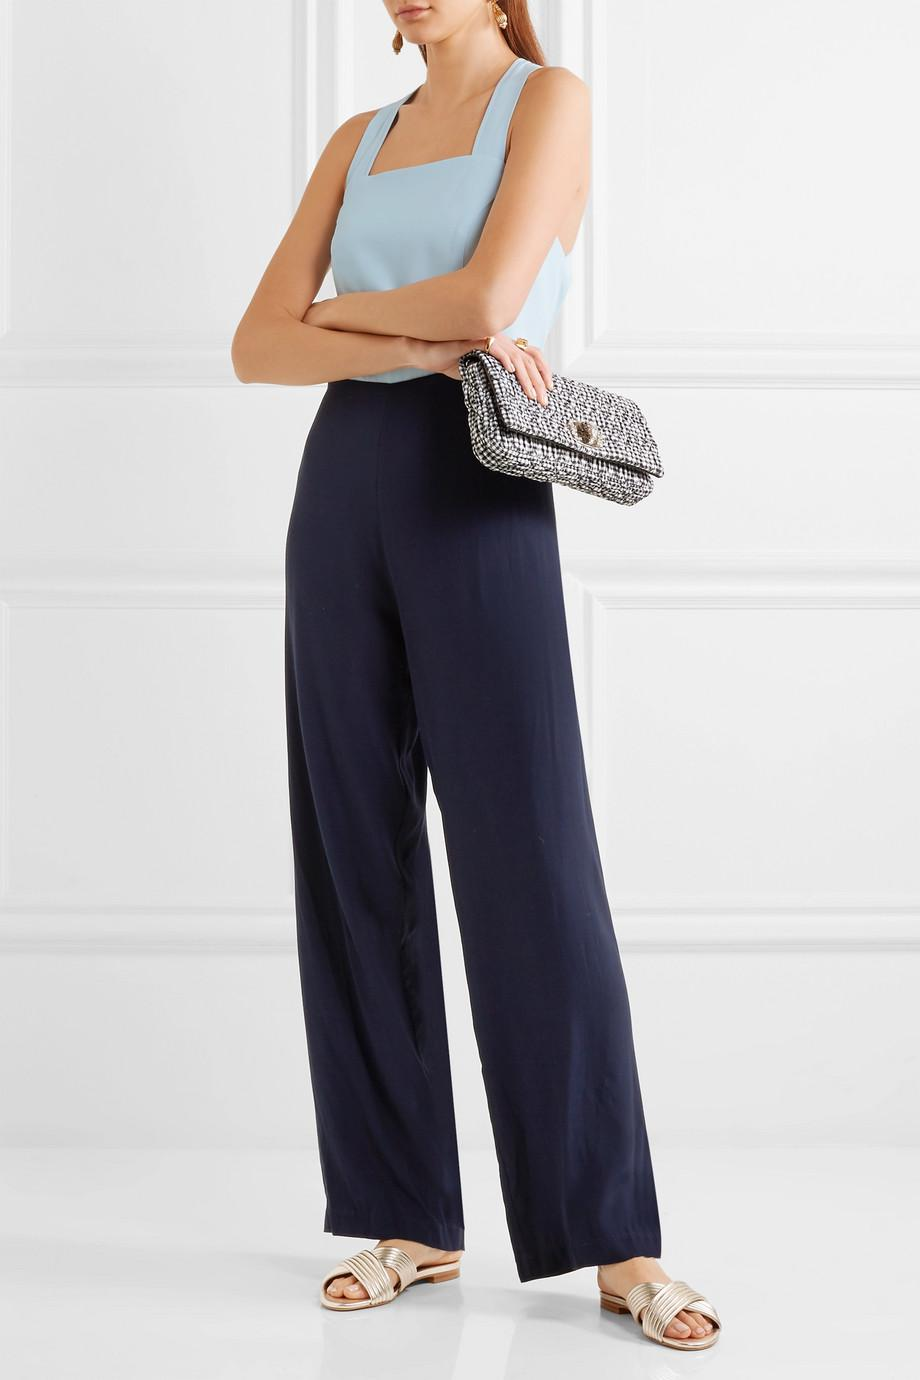 Ross Two-tone Crepe Jumpsuit - Light blue Staud Free Shipping With Mastercard Wholesale Online Fast Delivery Sale Online Clearance Online Official Site OqFrGb